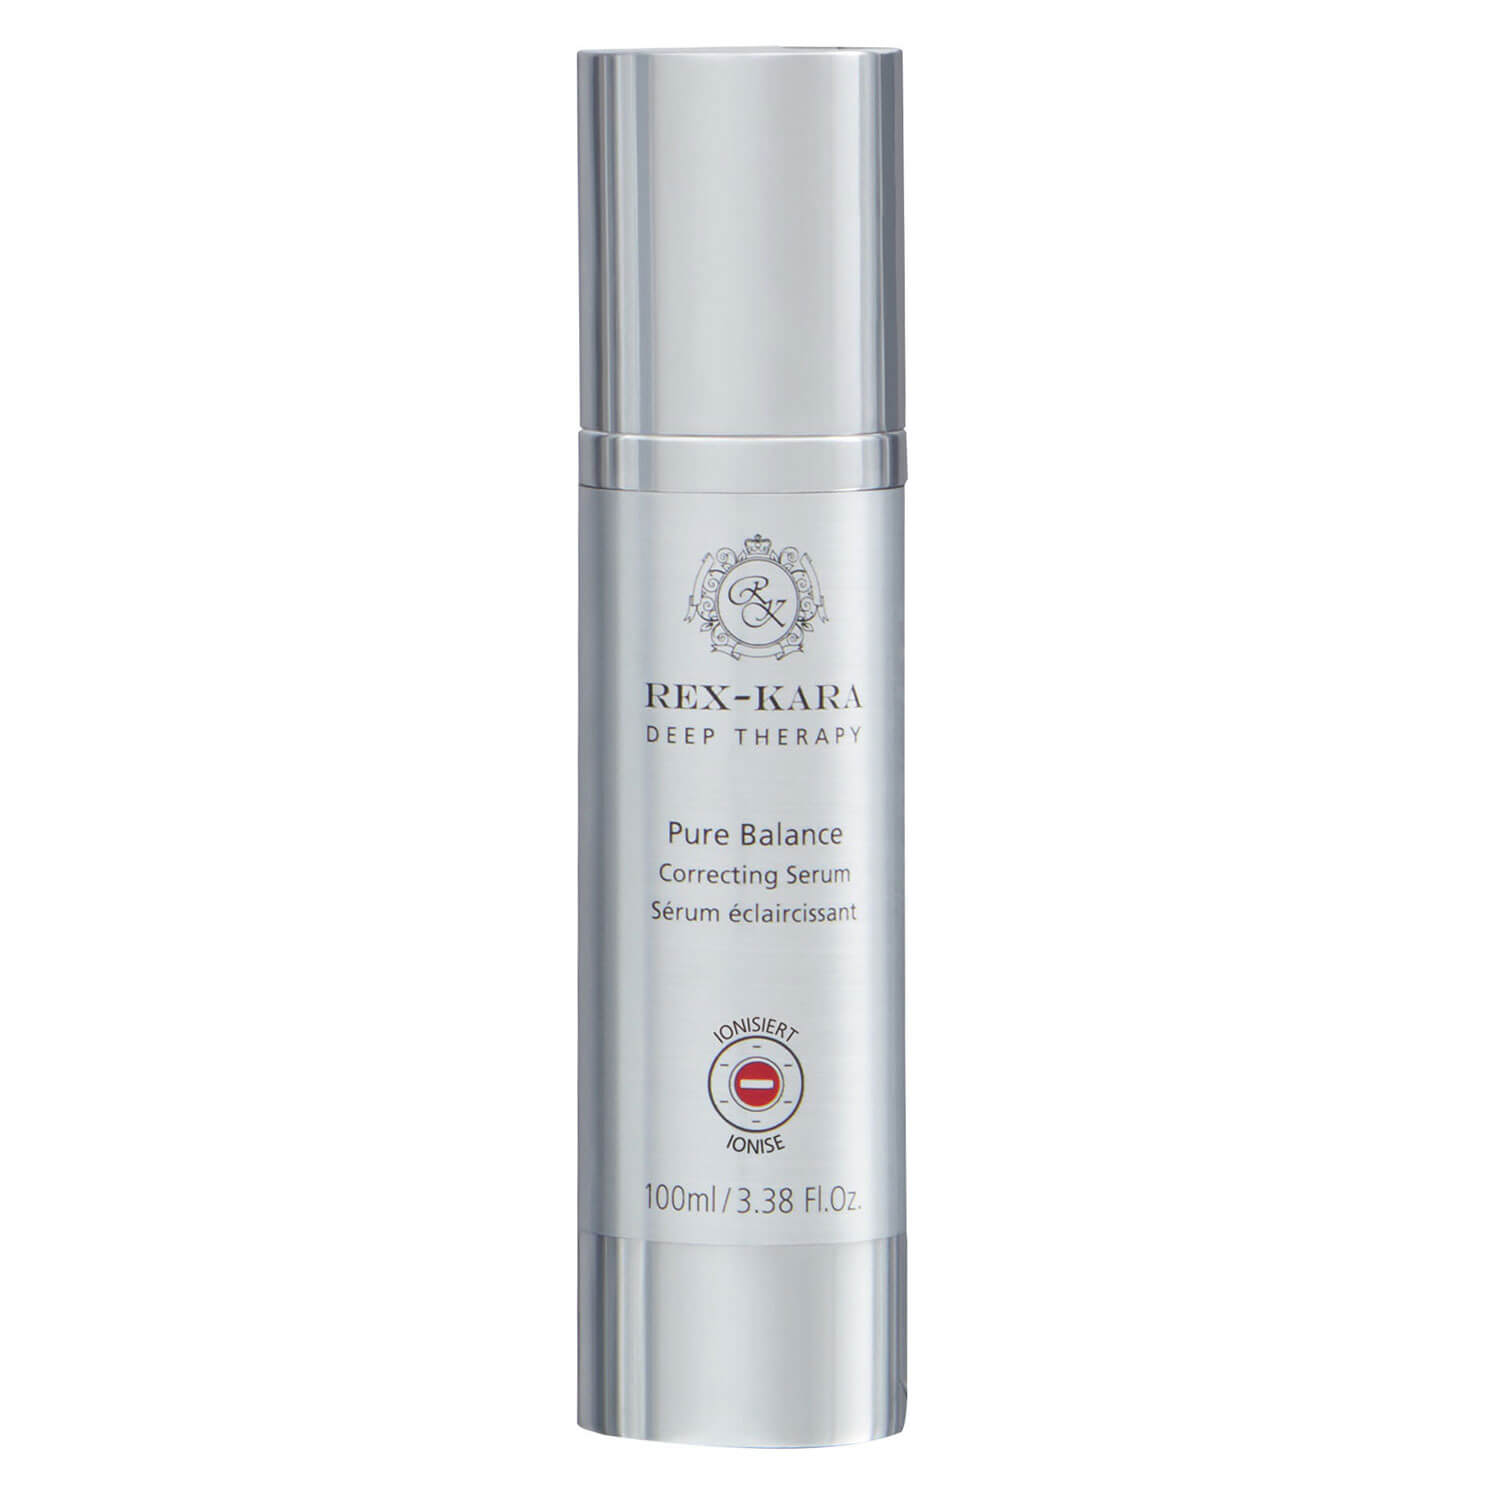 REX-KARA Deep Therapy - Pure Balance Correcting Serum (-) - 100ml